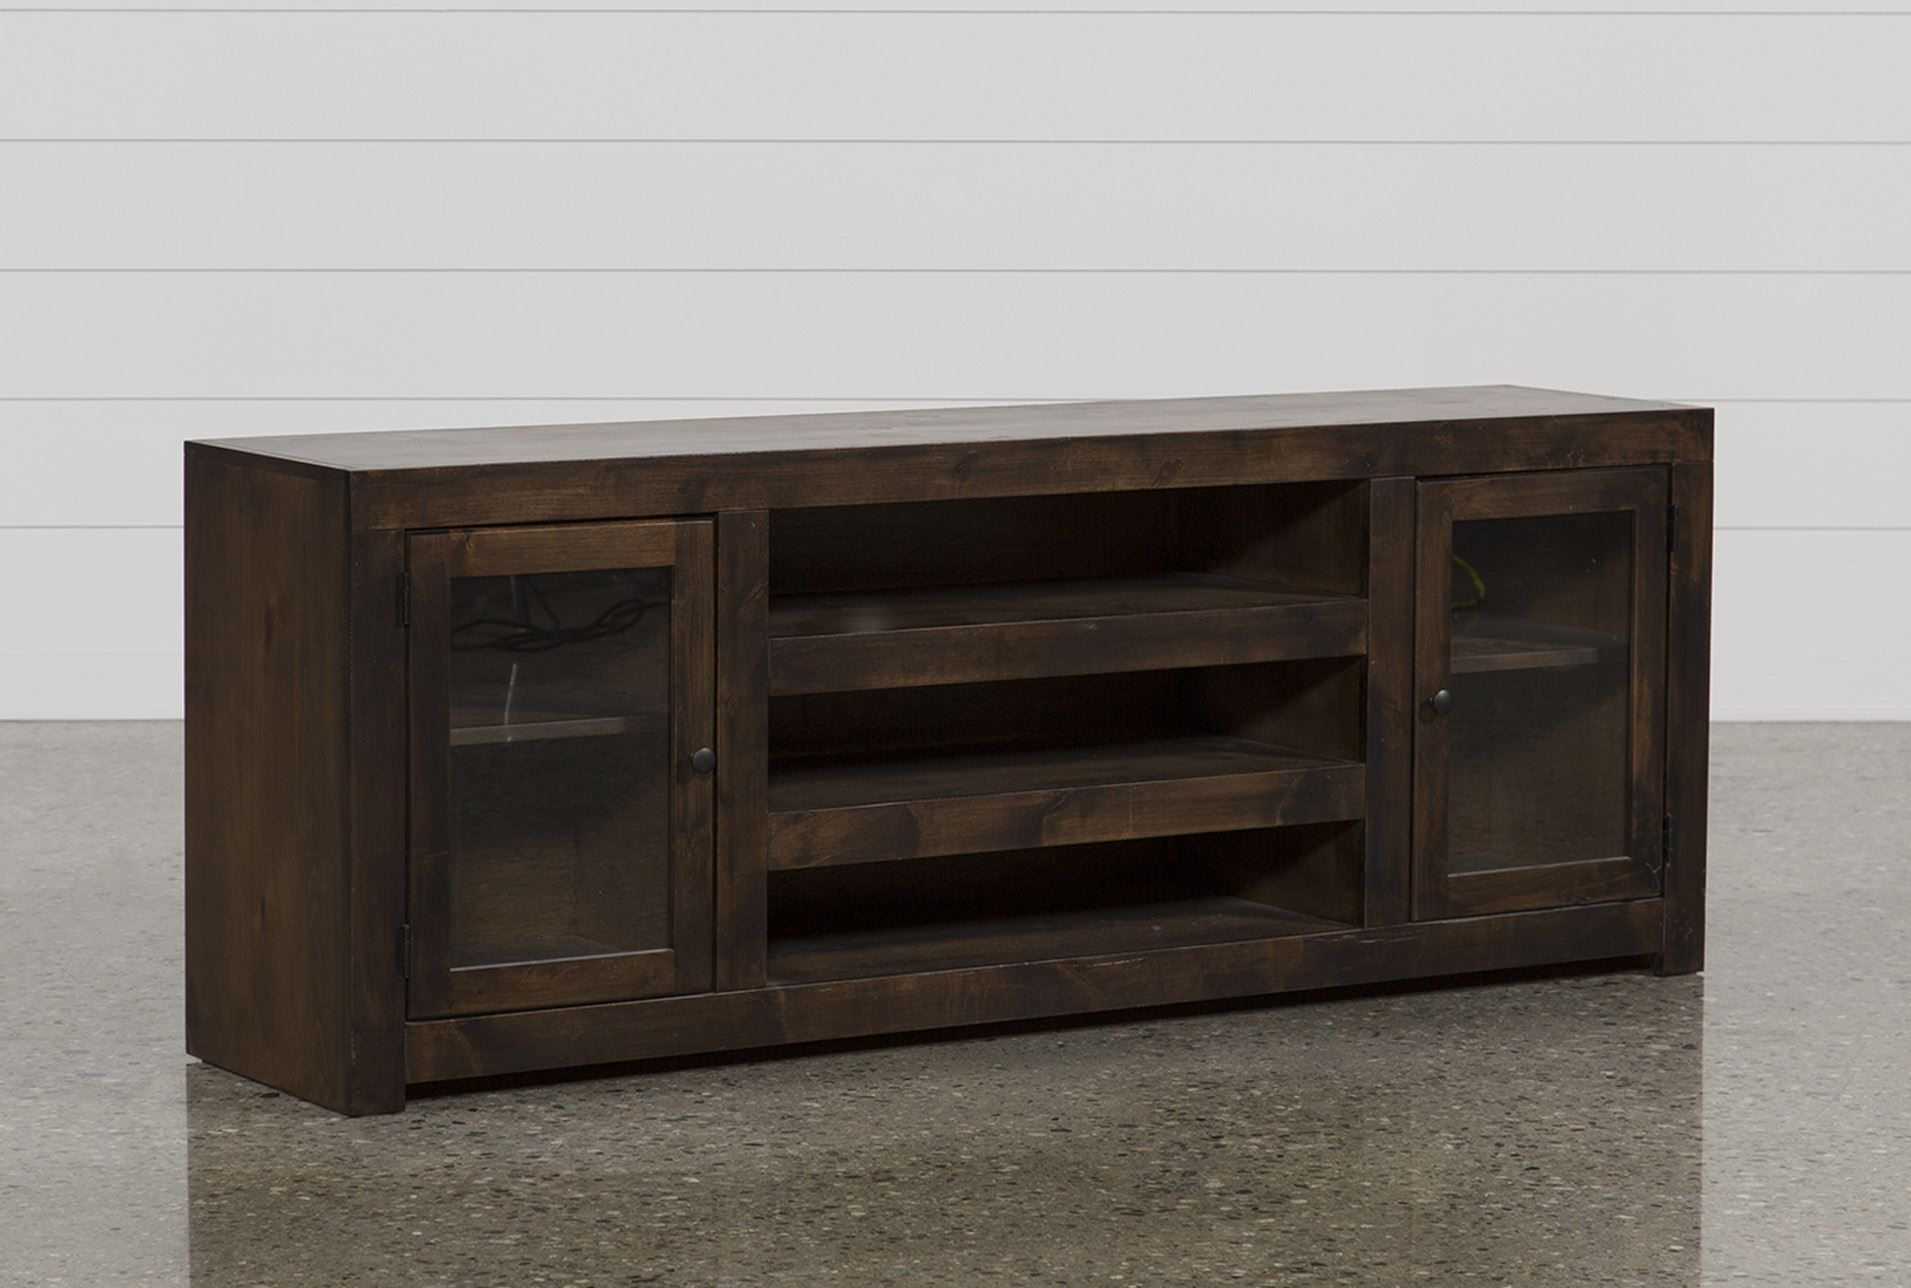 Walton 72 Inch Tv Stand, Tobacco | Living Room | Pinterest for Walton 74 Inch Open Tv Stands (Image 26 of 30)